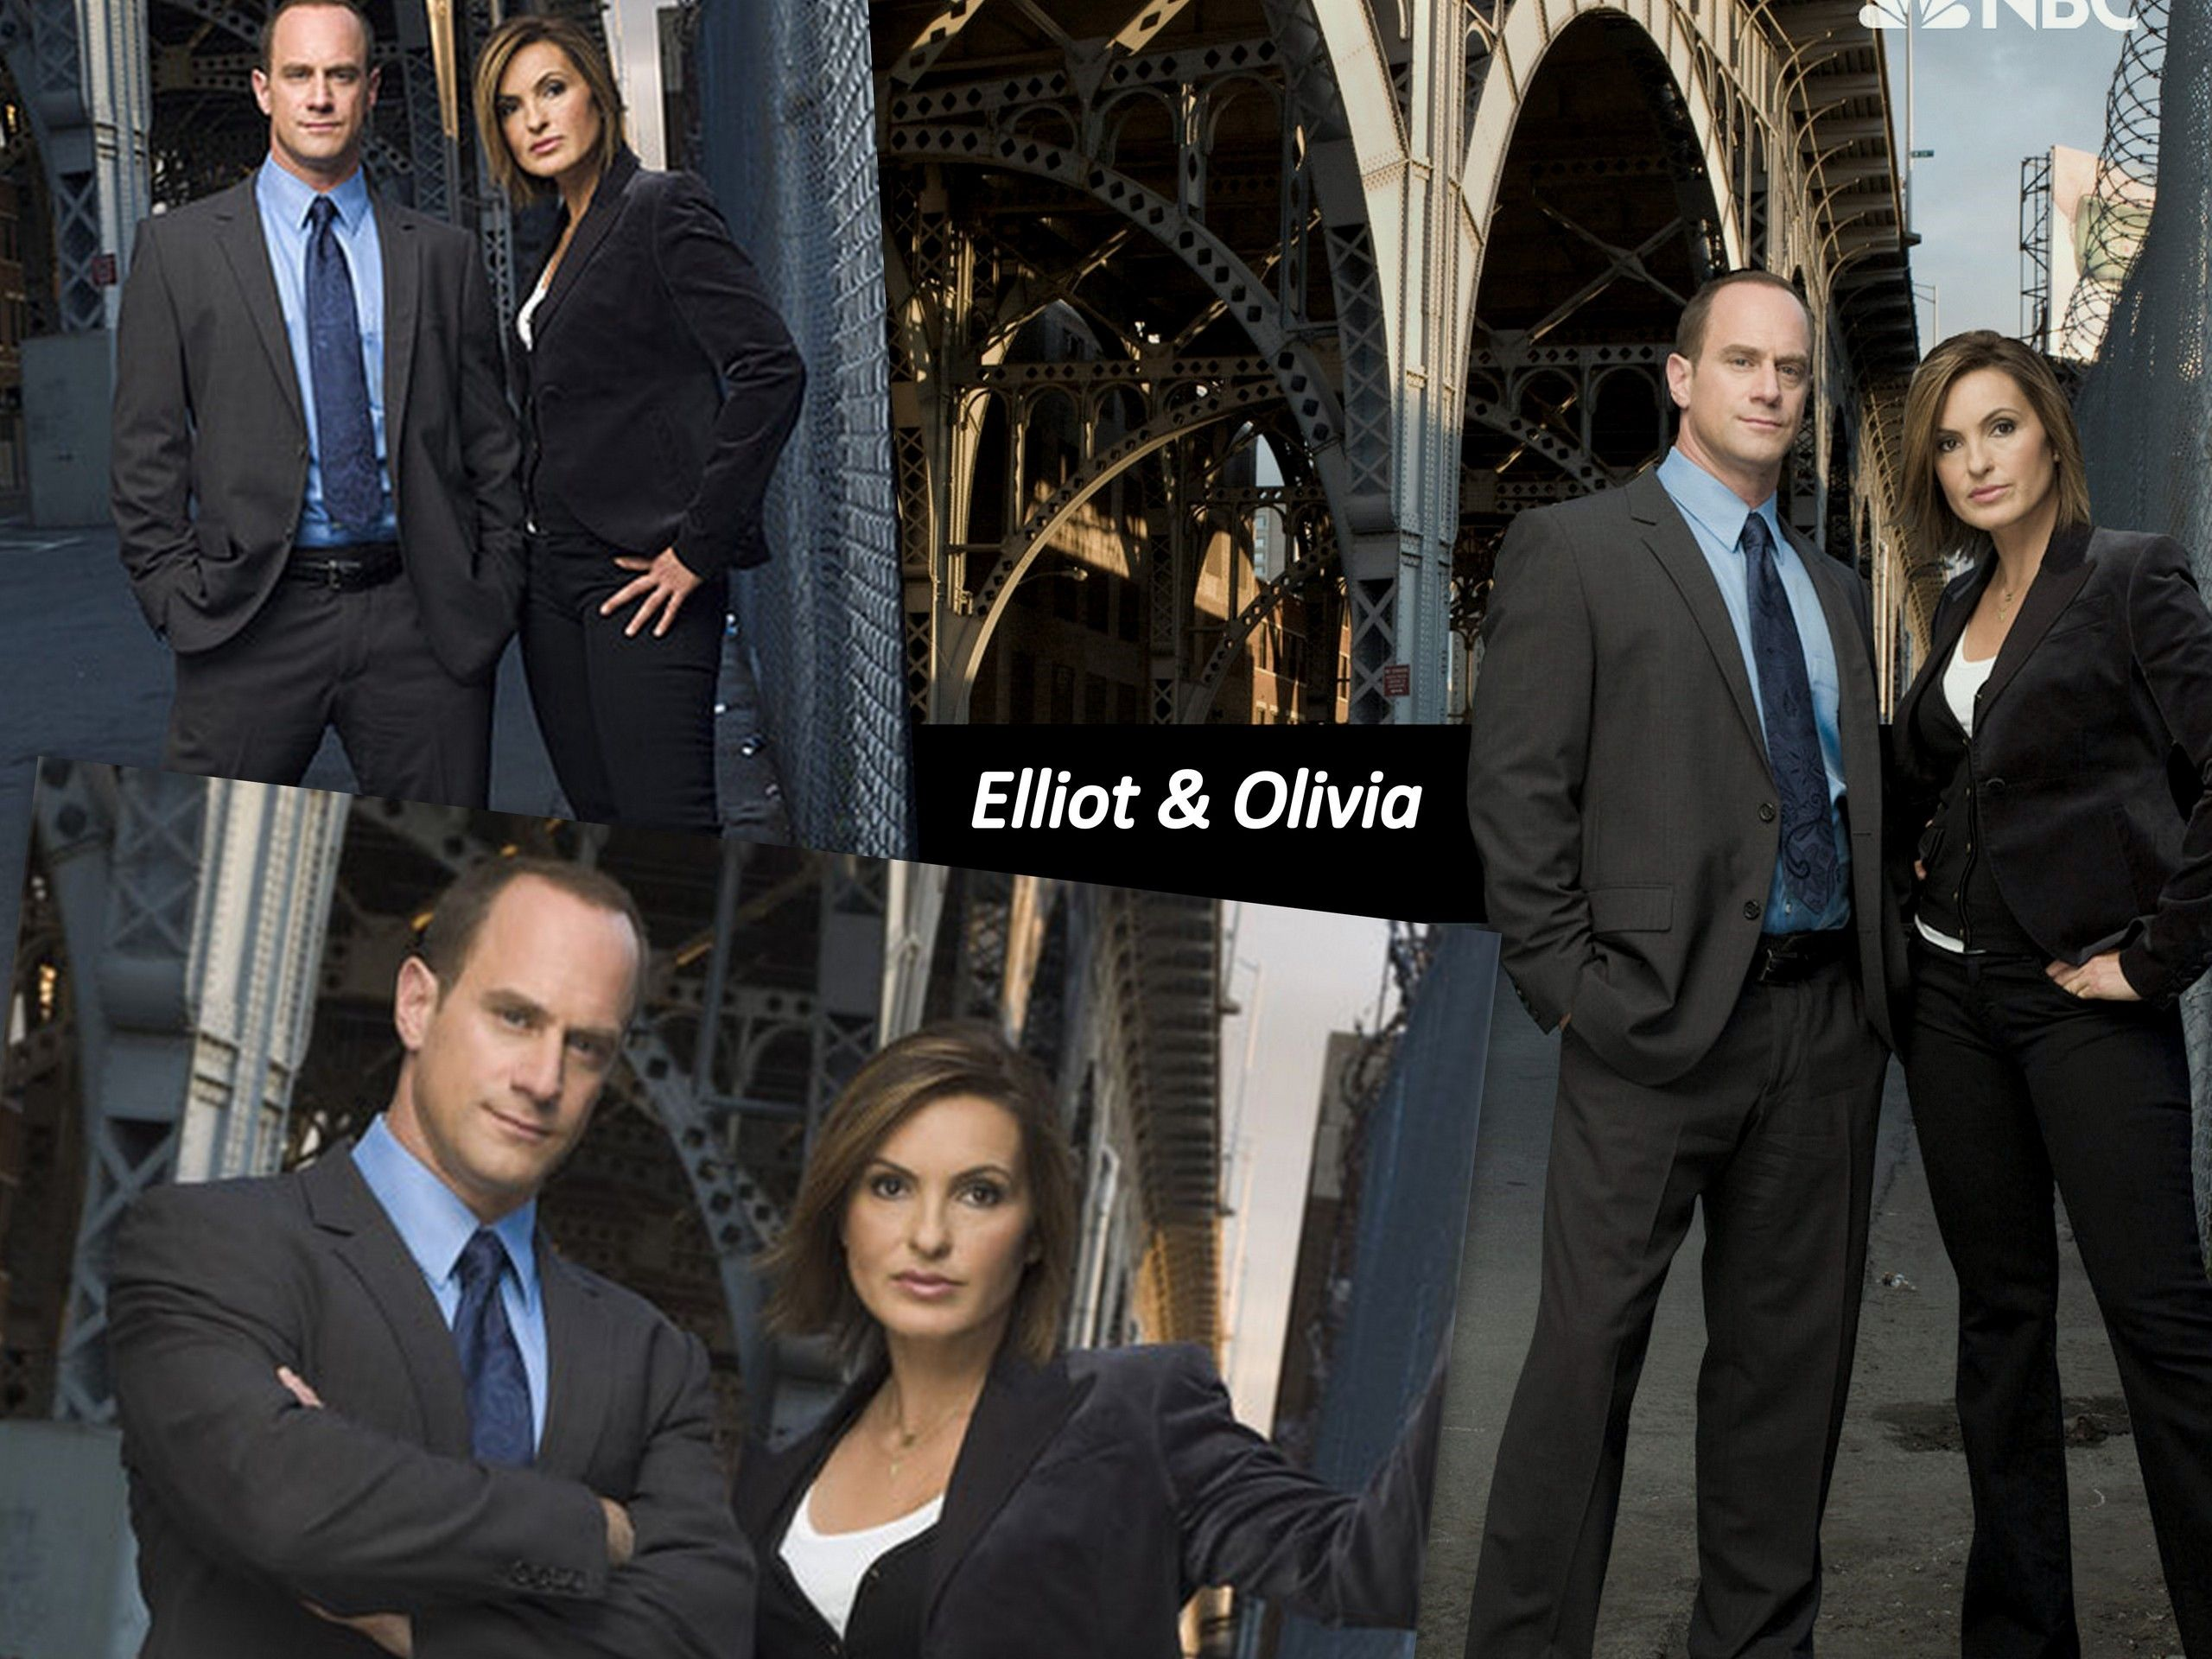 Law And Order Svu Wallpaper Elliot Olivia Law And Order Special Victims Unit Law And Order Svu Law And Order